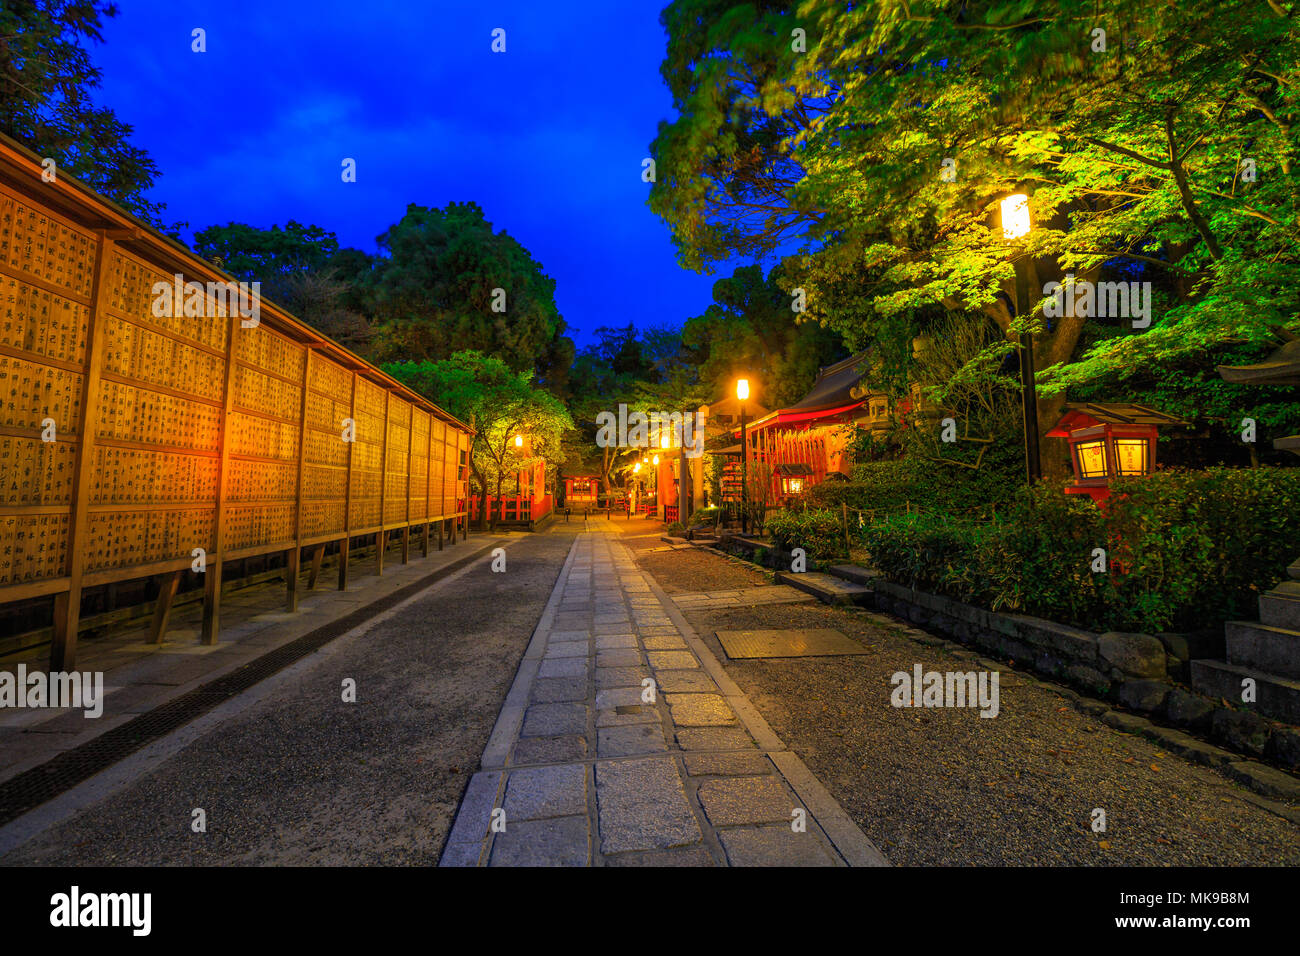 Kyoto, Japan - April 25, 2017: Illuminated path at dusk from Yasaka Shrine to the Gion weeping cherry tree in Maruyama Park. Gion Shrine is one of the most famous shrines in Kyoto, Japan . - Stock Image